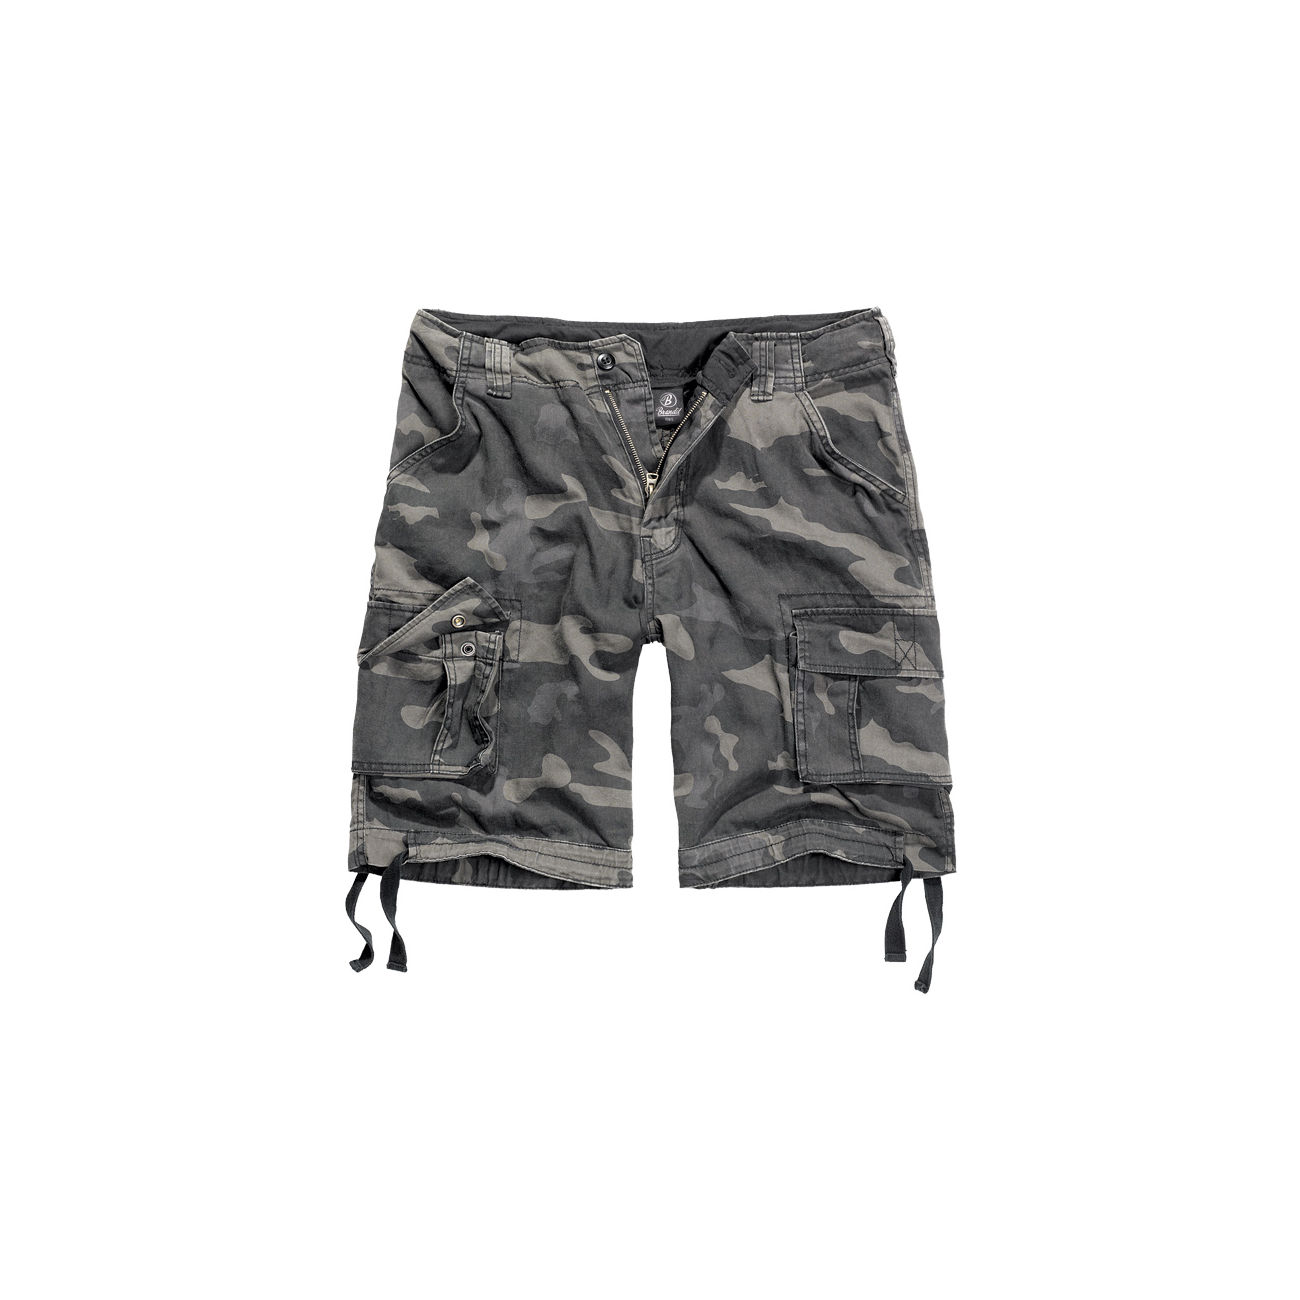 Brandit Urban Legend Short darkcamo 0